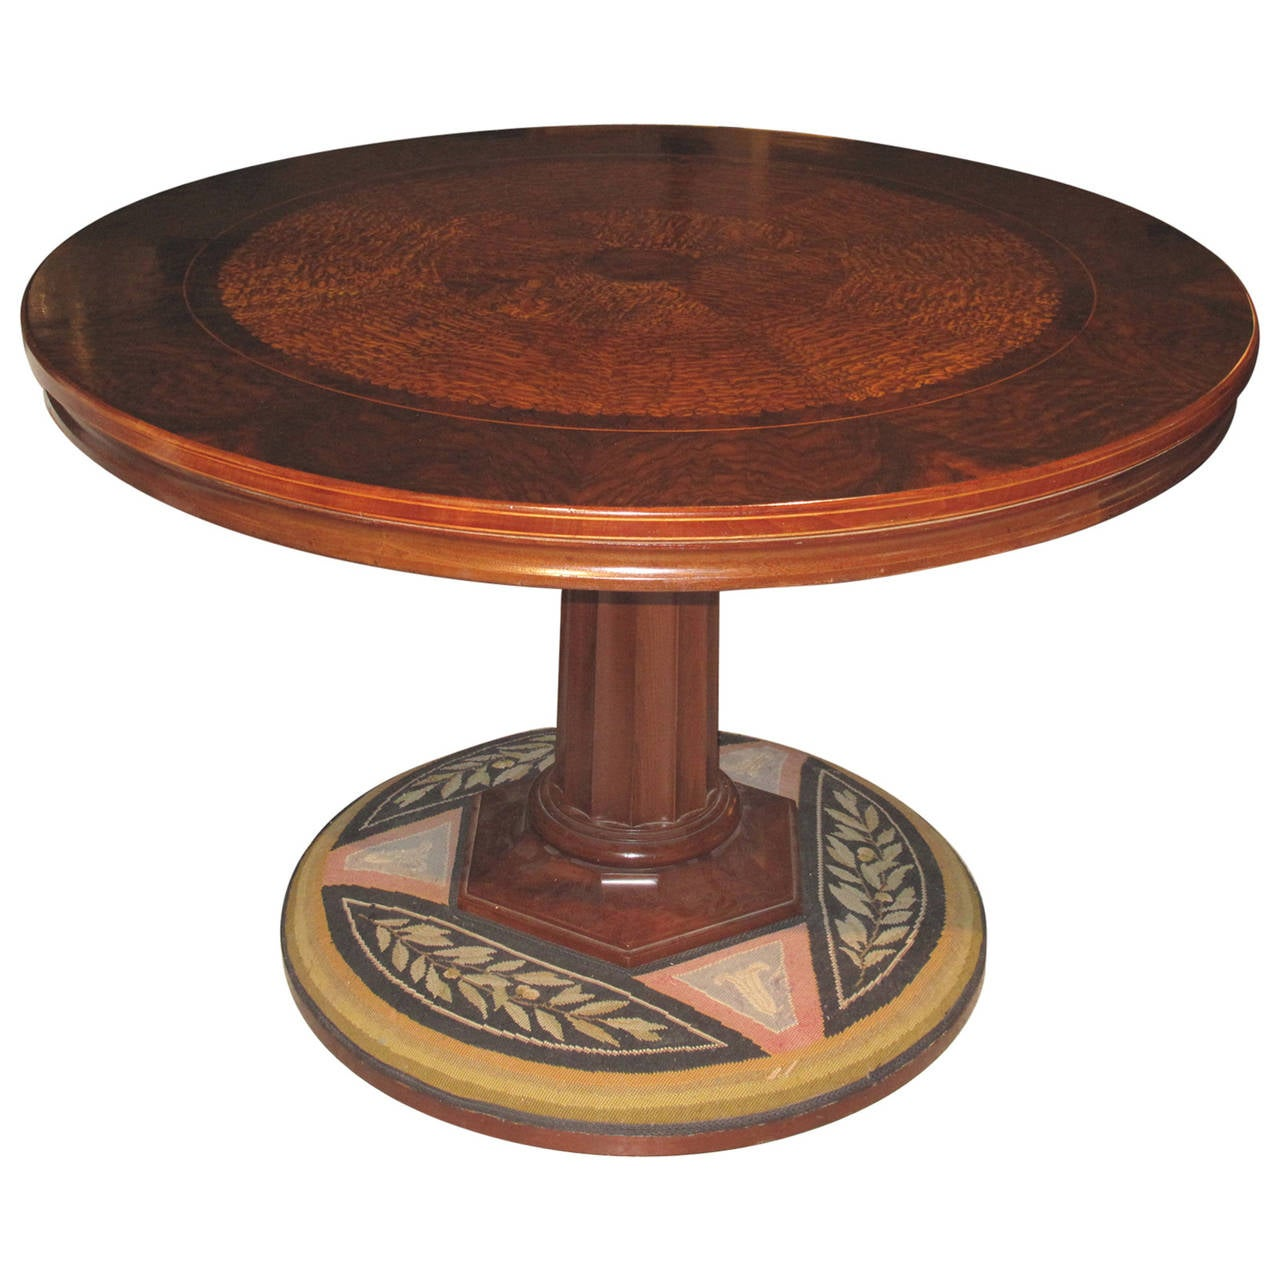 19th Century Danish Center Table with a Fine Root Wood Inlaid Top